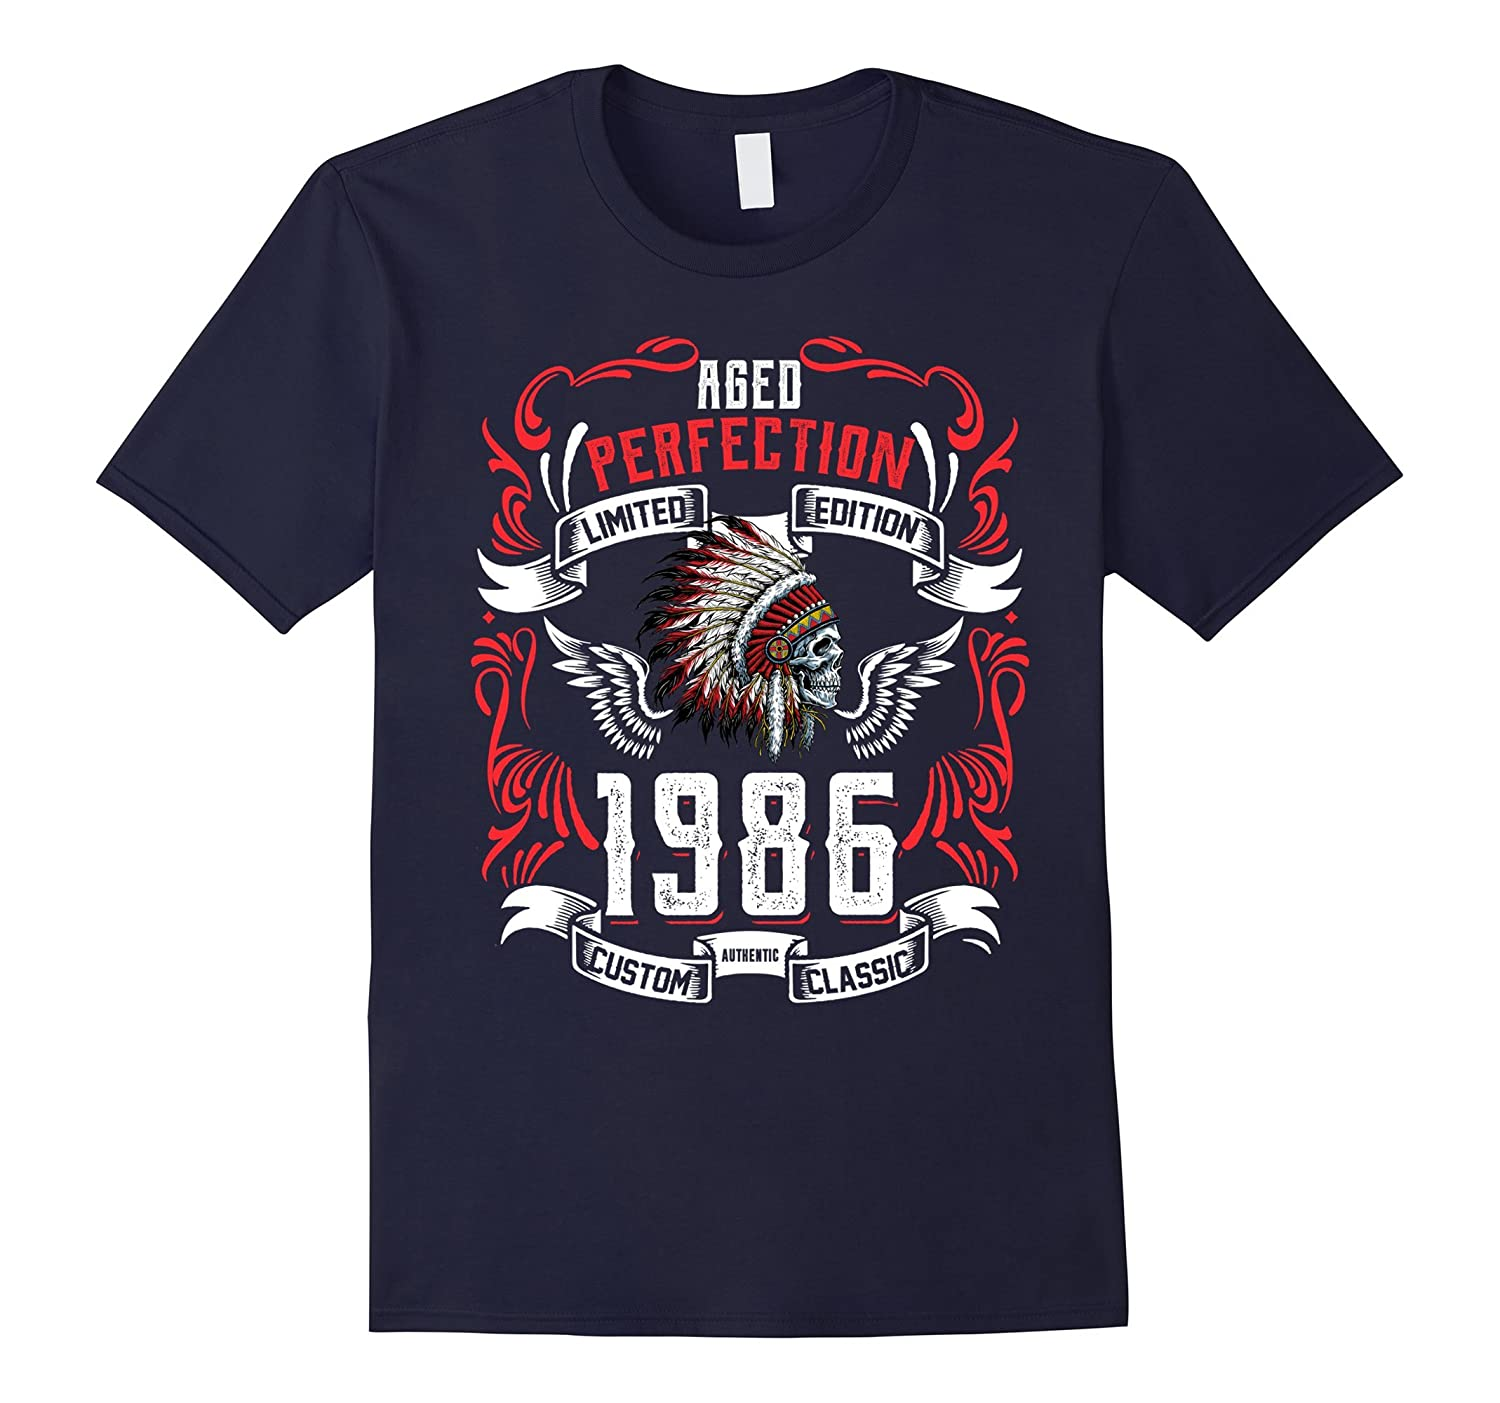 31th Birthday Limited Edition 1986 Tee Shirt-BN